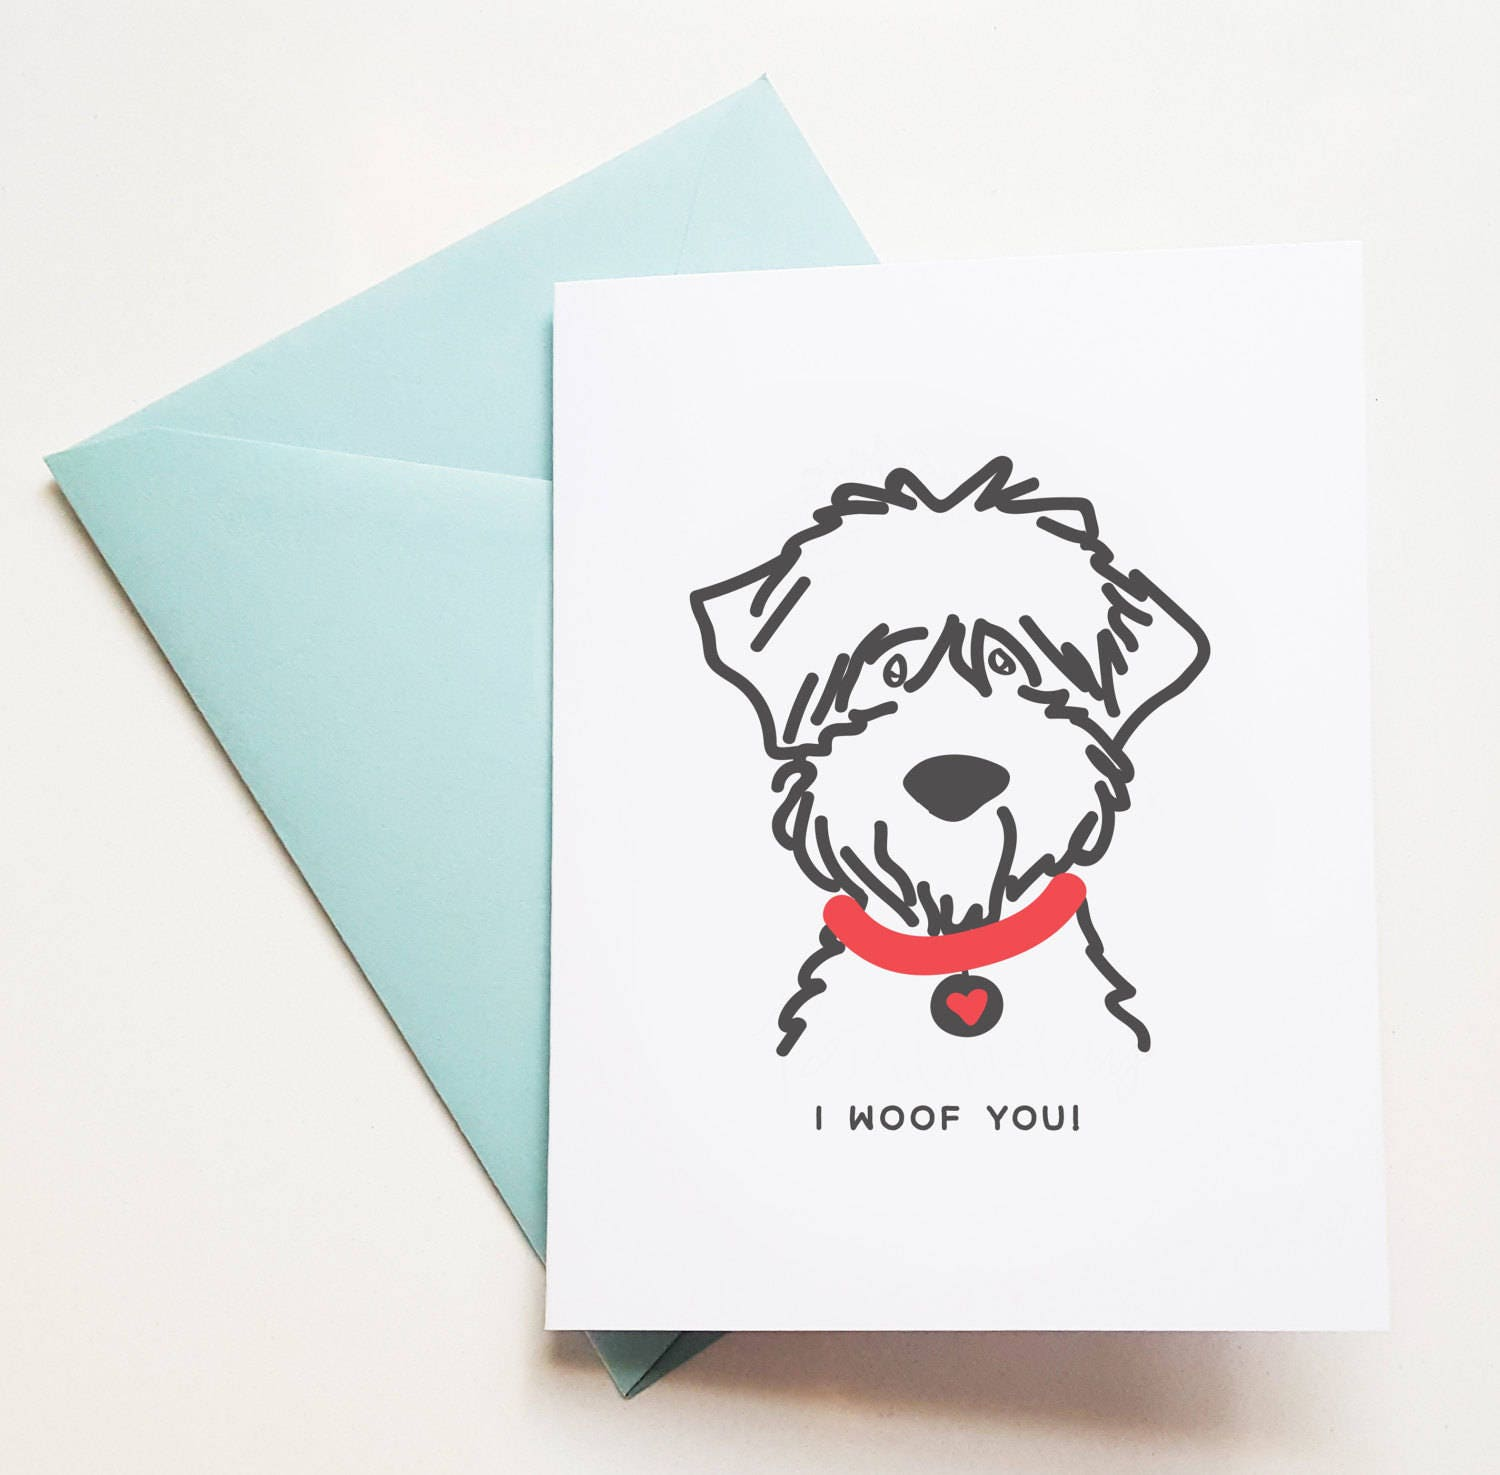 Fresh dog birthday cards graphics eccleshallfc birthday card from dog to mom or dad cards from dog birthday bookmarktalkfo Images